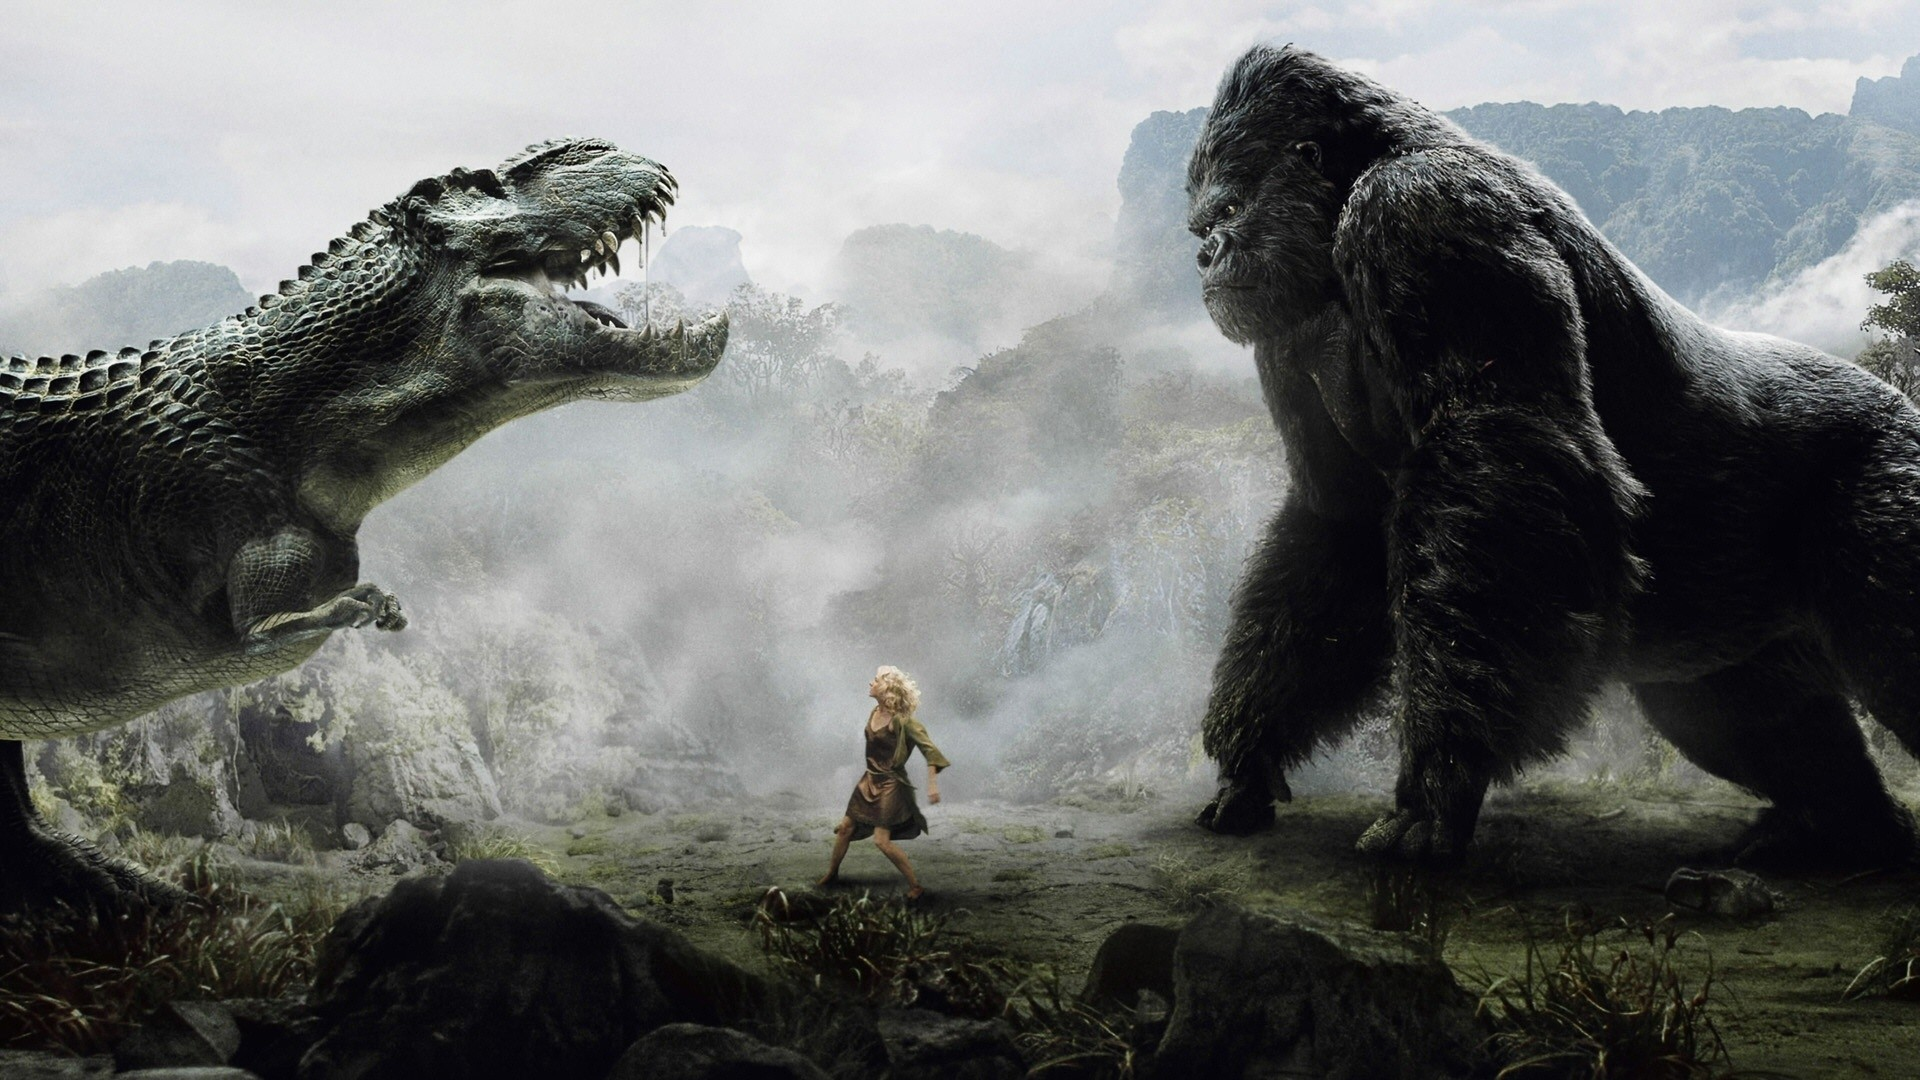 1920x1080 Dinosaur Wallpaper #1: T-Rex Versus King Kong